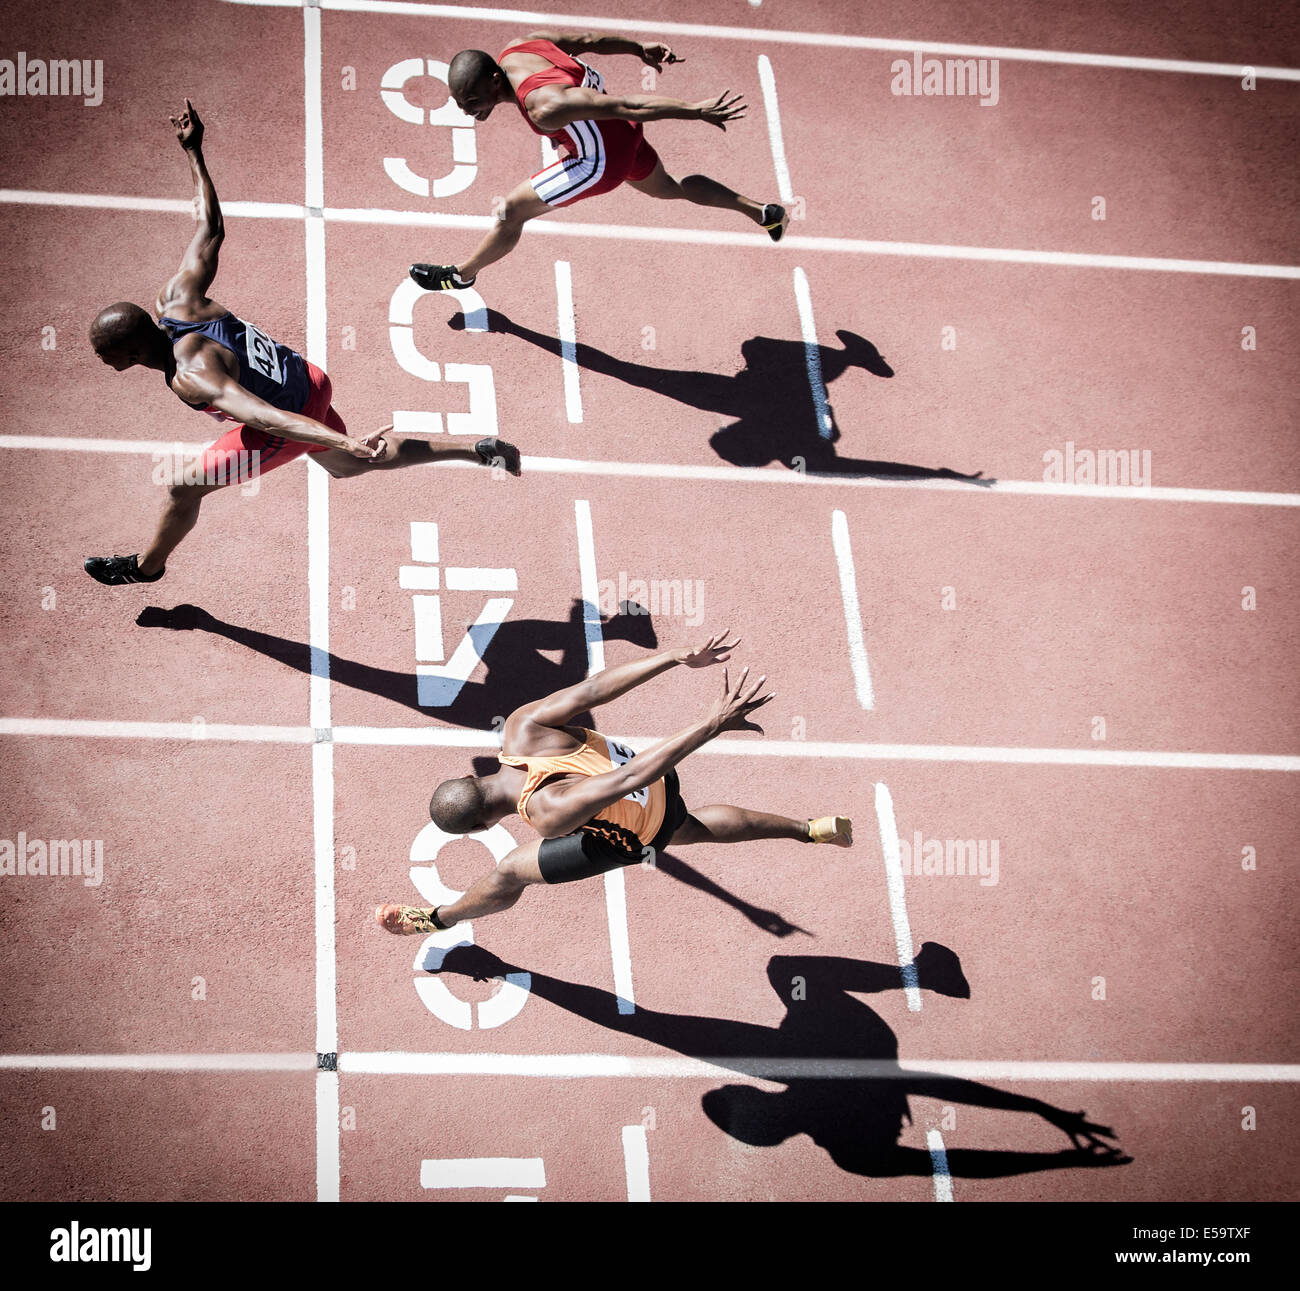 Runners crossing finish line on track - Stock Image